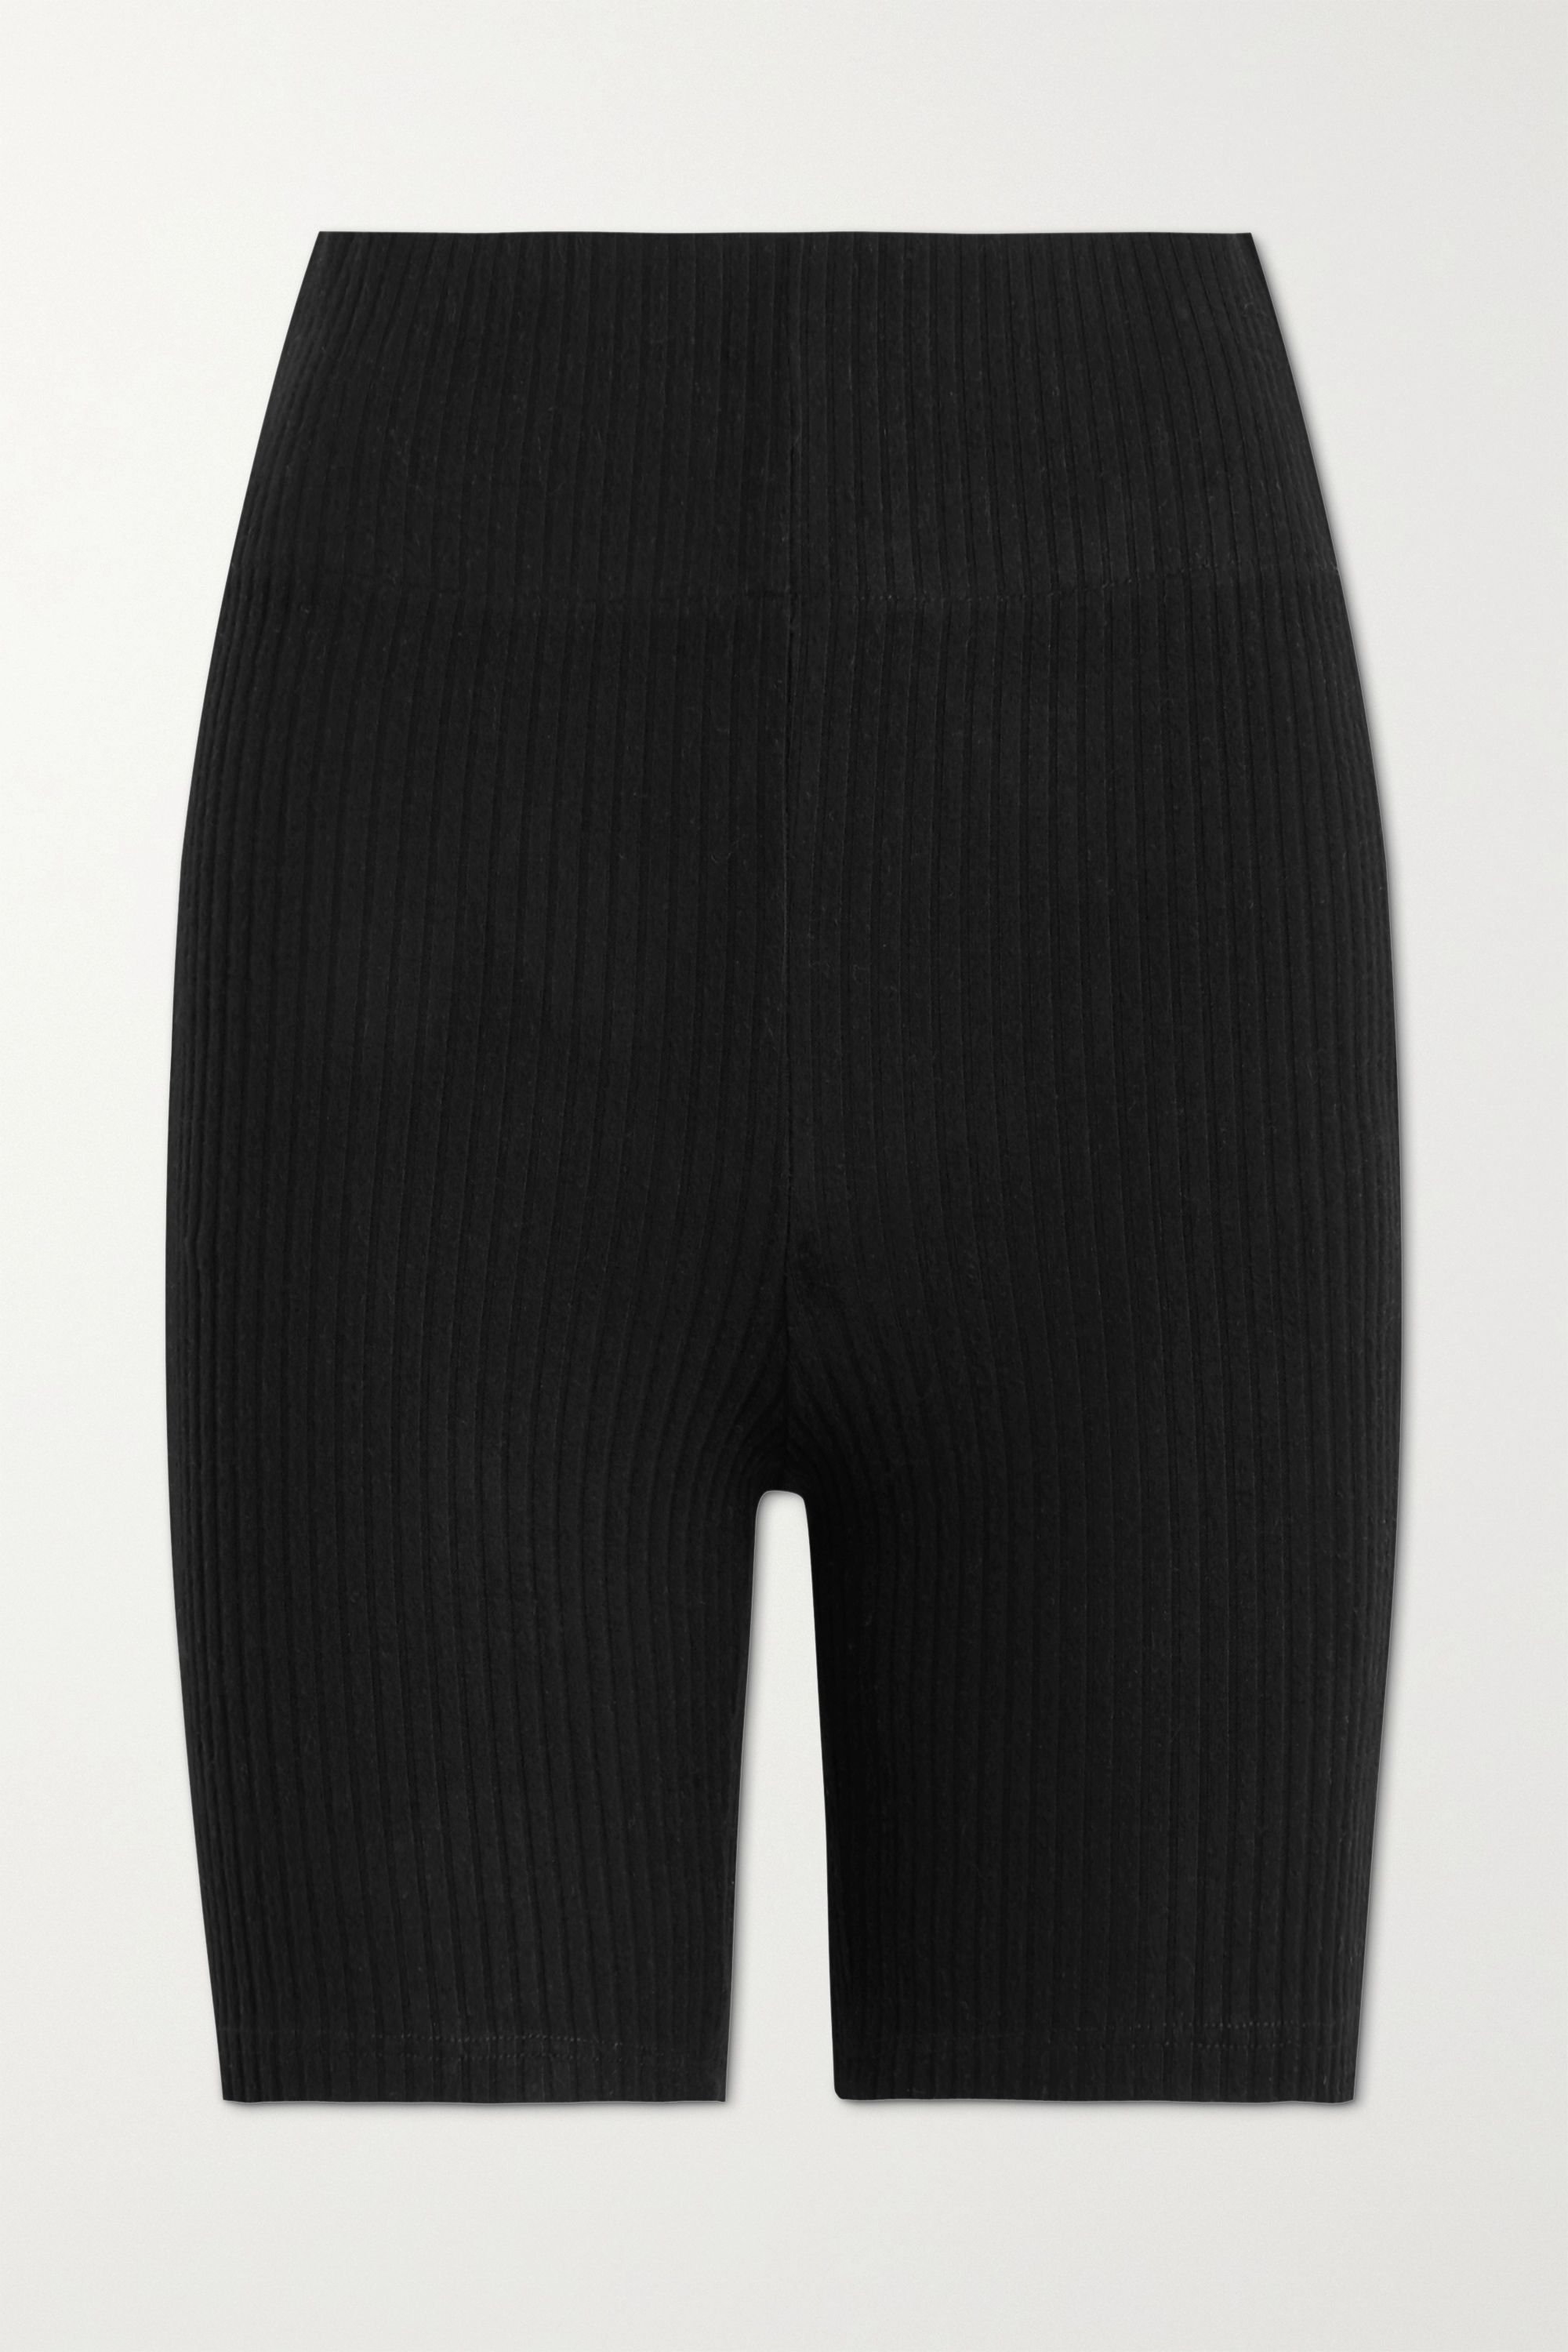 LESET Alison ribbed stretch-knit shorts